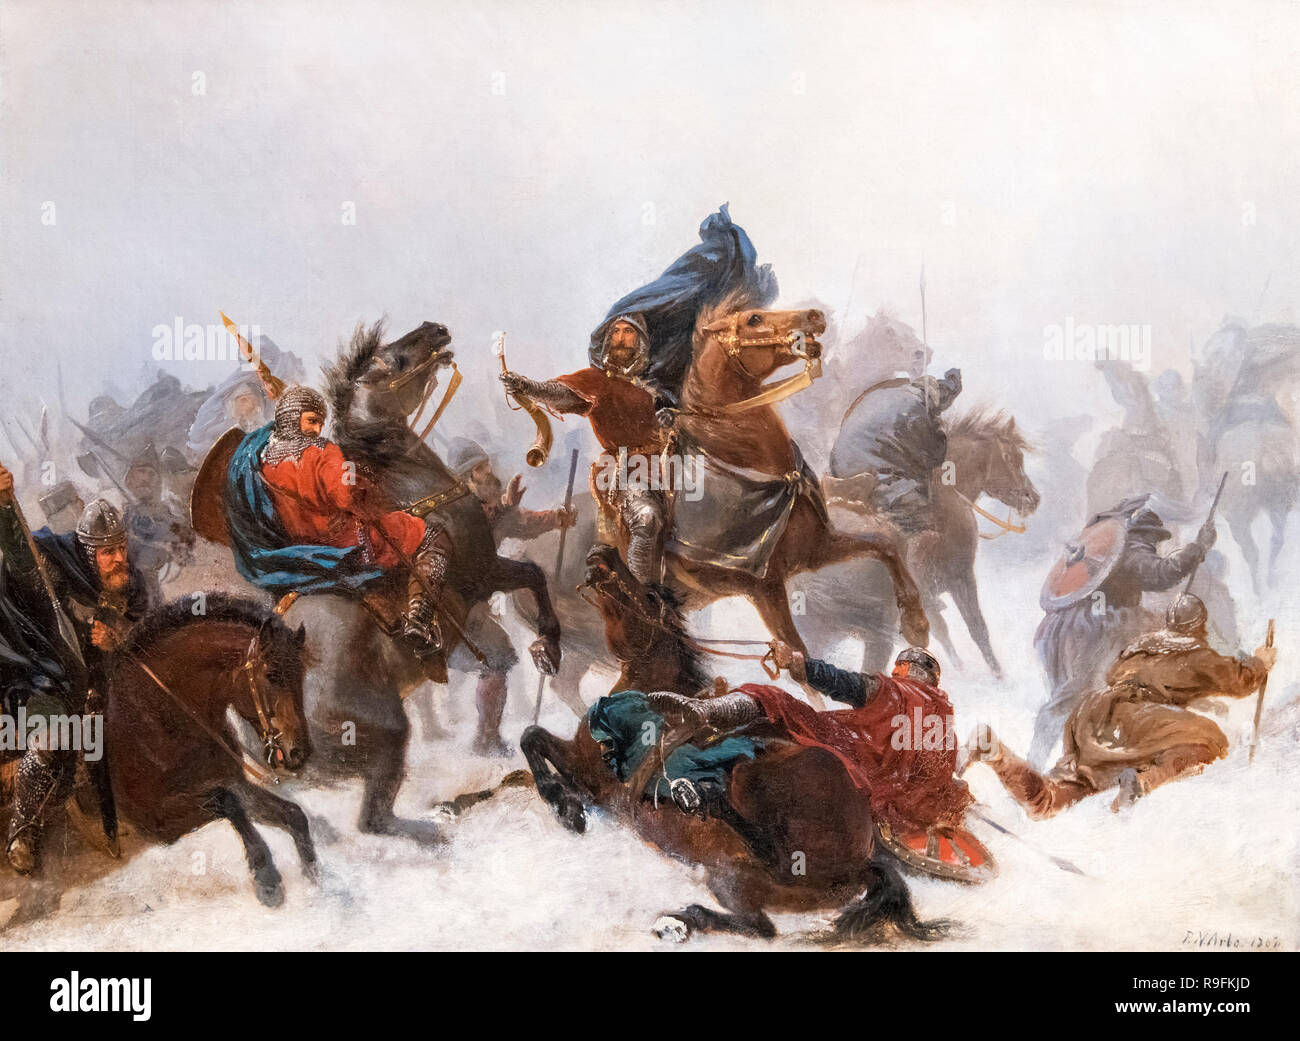 The Flight of King Sverre by Peter Nicolai Arbo (1831-1892), oil on canvas, 1862 - Stock Image